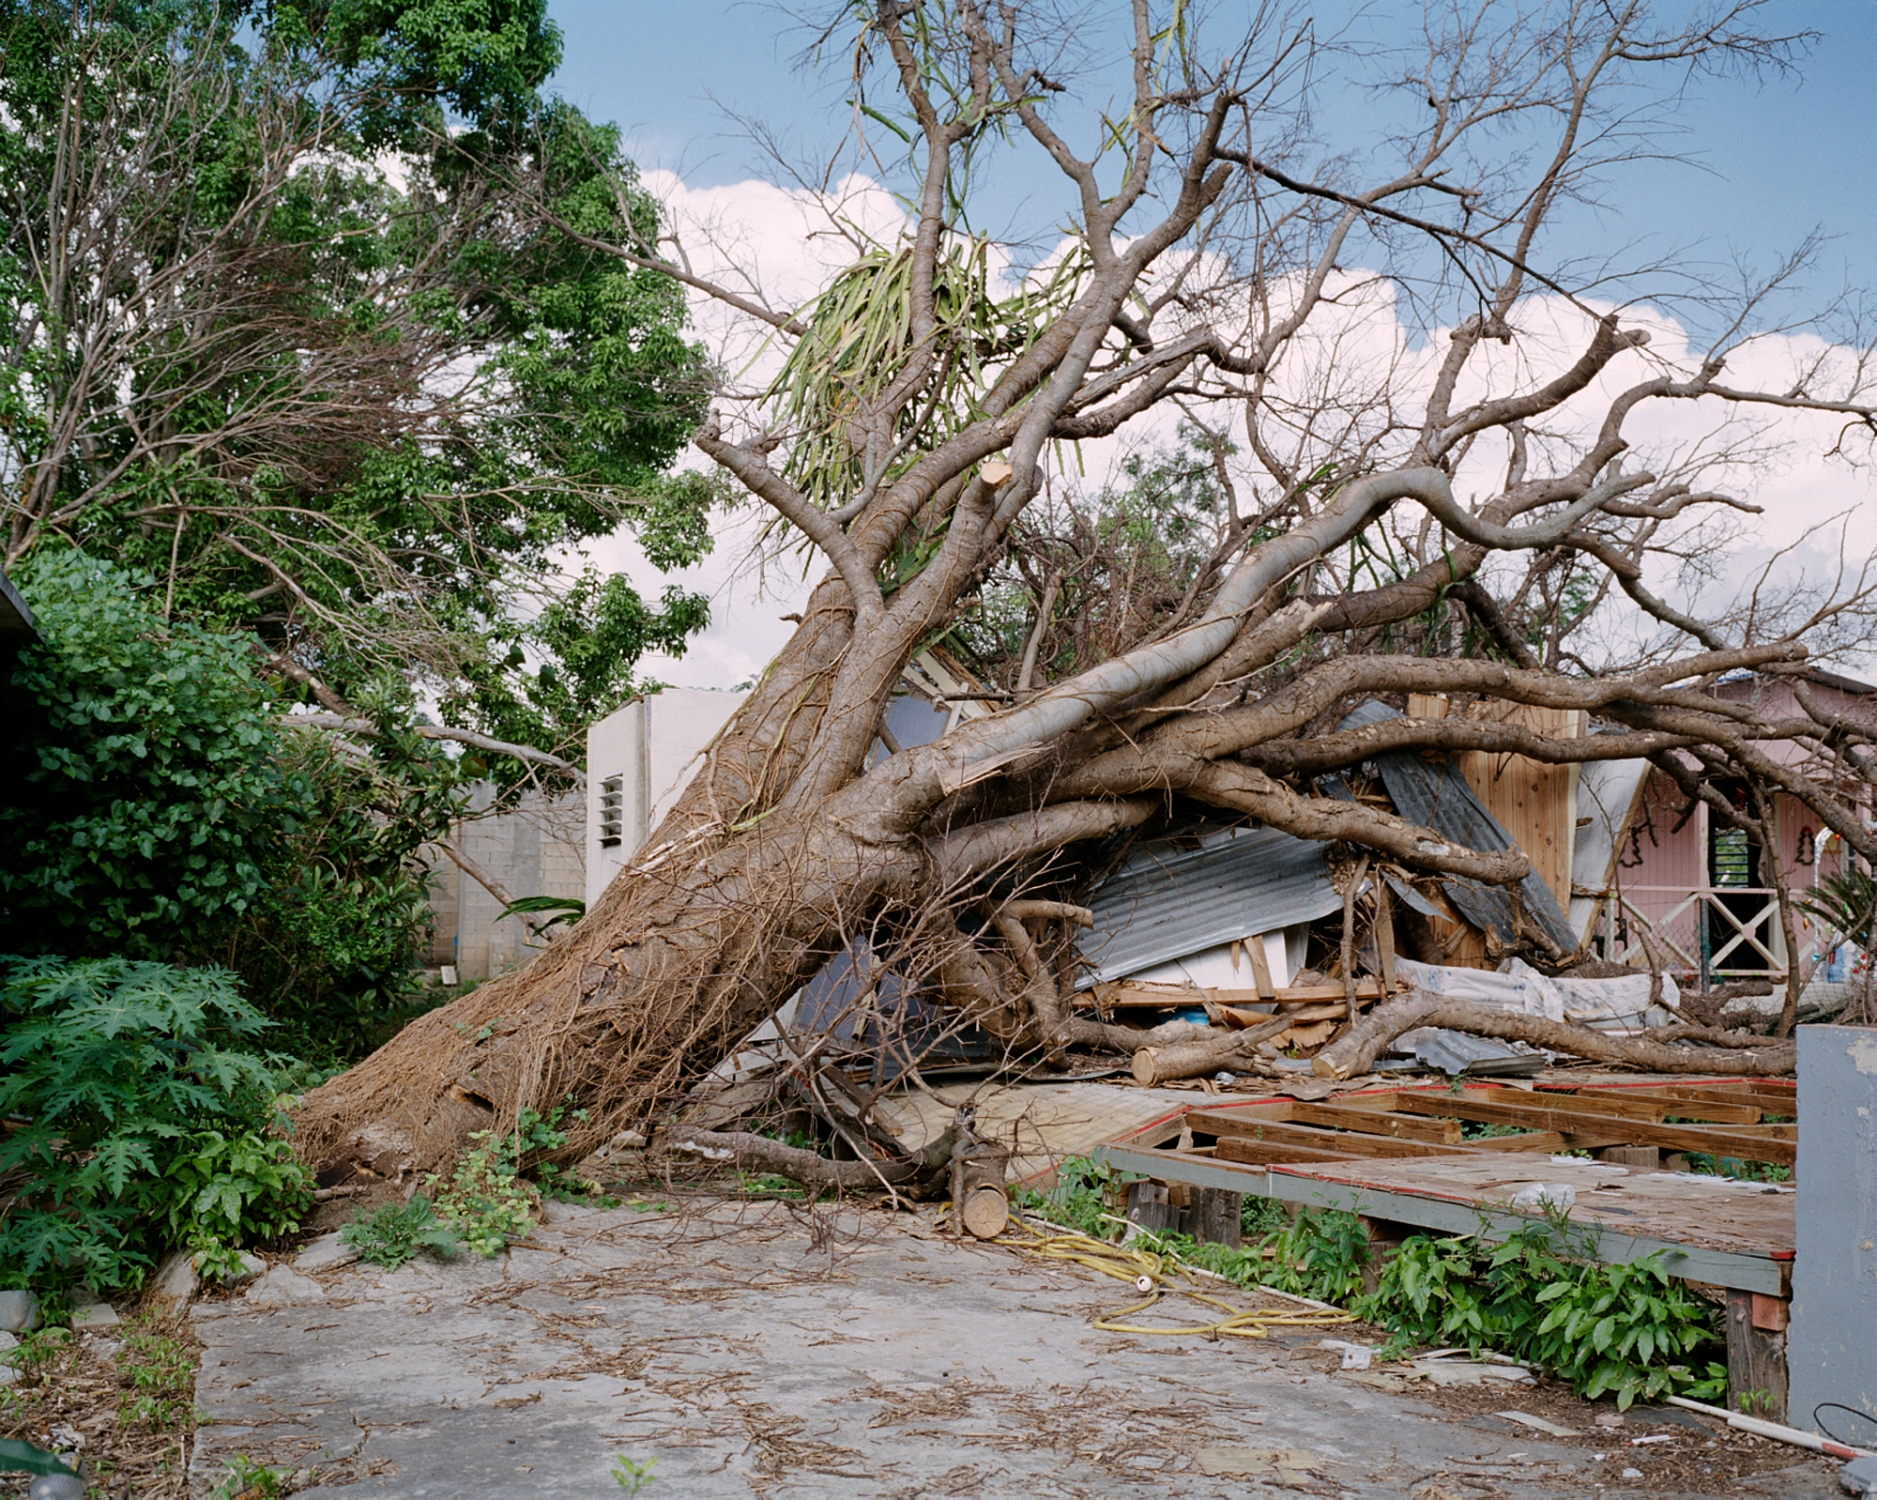 Hurricane Maria married a house and tree in the barrio of Buyones, just outside the airport my family and I always flew into, from New York. The passengers would clap after every flight had landed and the smell of mango trees would seep into the airplane.  Buyones, Puerto Rico, December 2017.